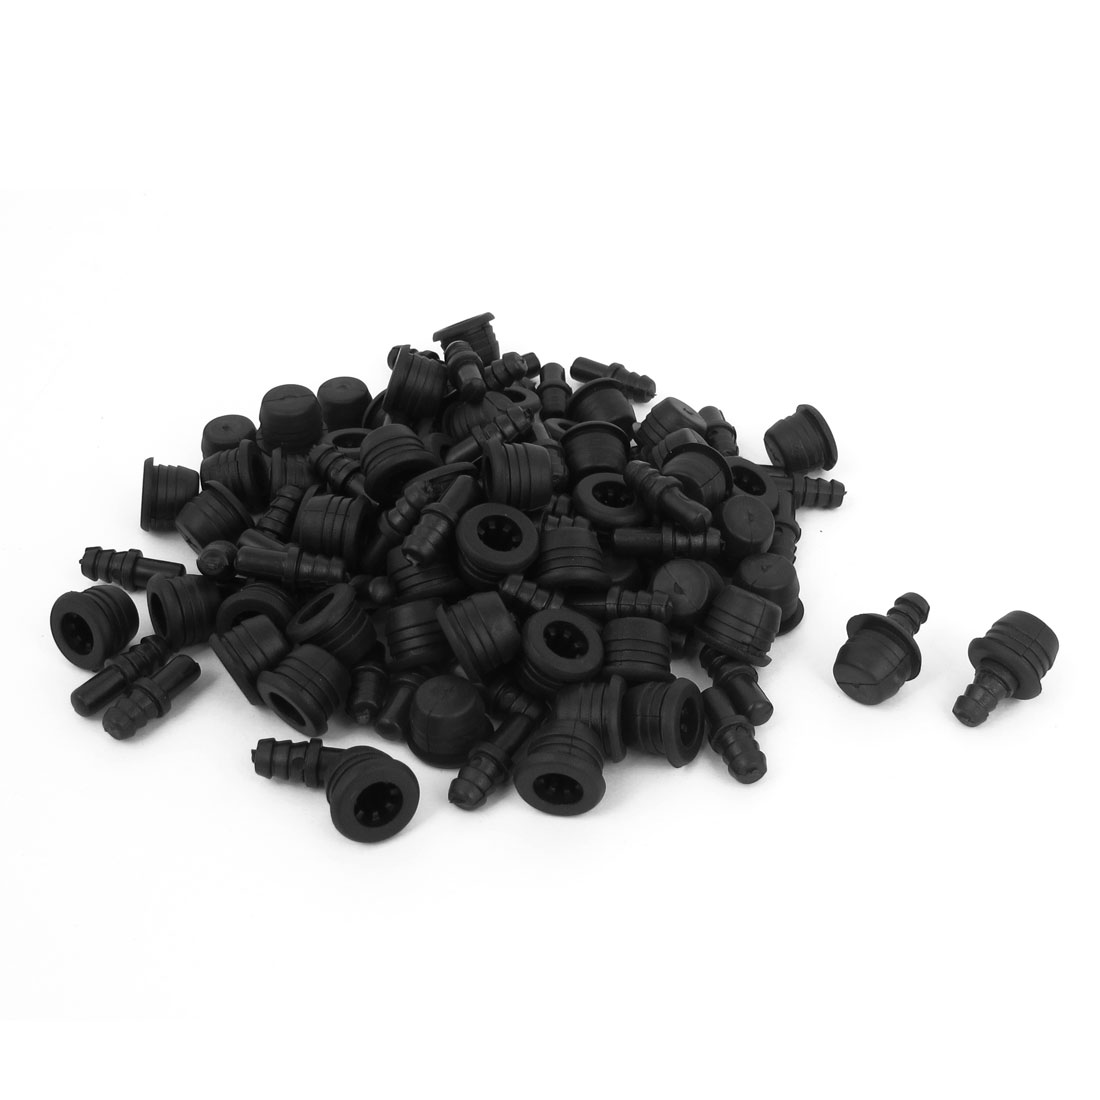 Black Plastic Socket Type Speaker Grill Fixing Pegs Studs Buckles 200pcs